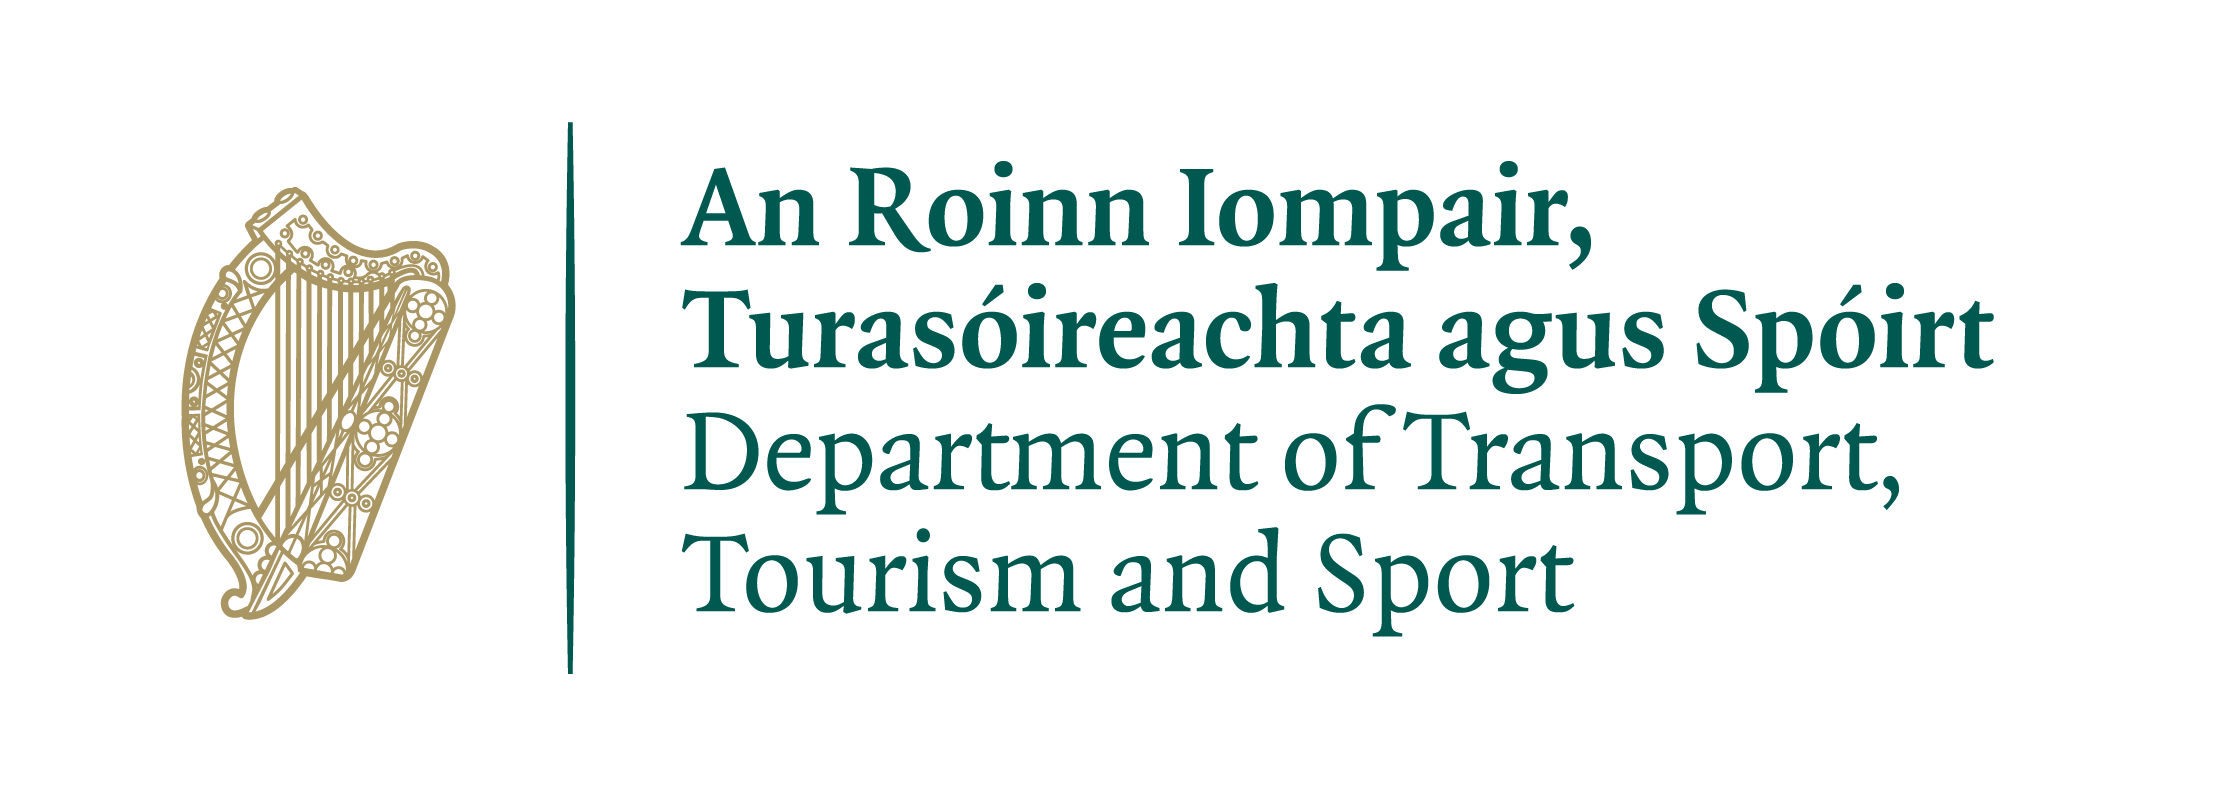 Ireland Department of Transport, Tourism and Sport